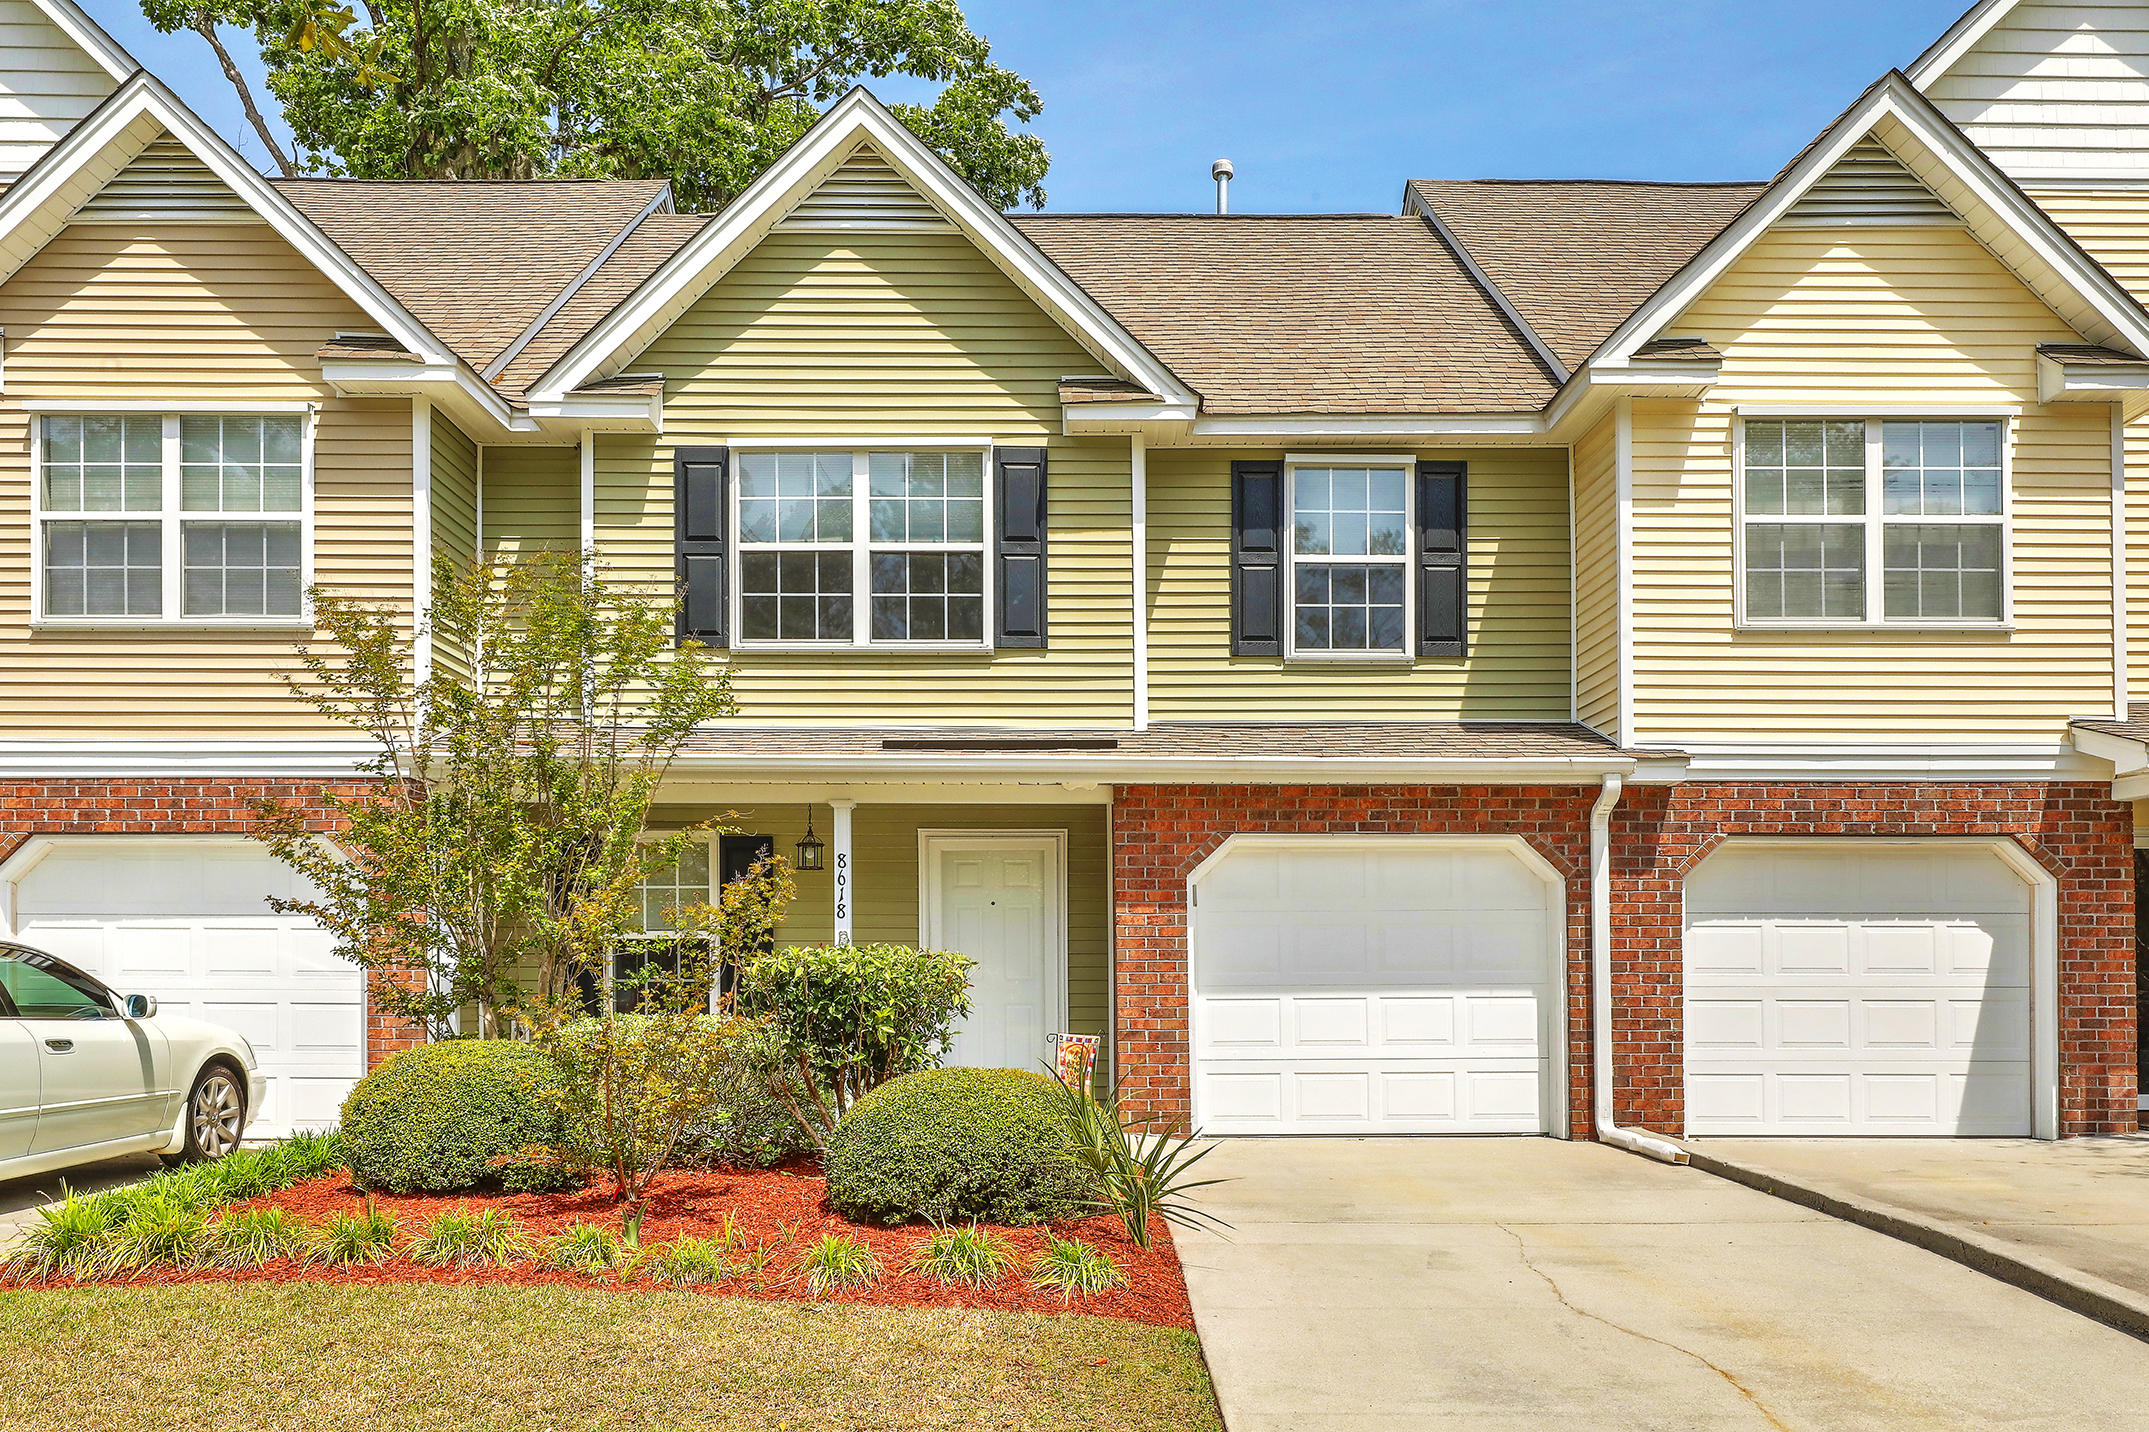 8618 Grassy Oak Trail North Charleston, SC 29420